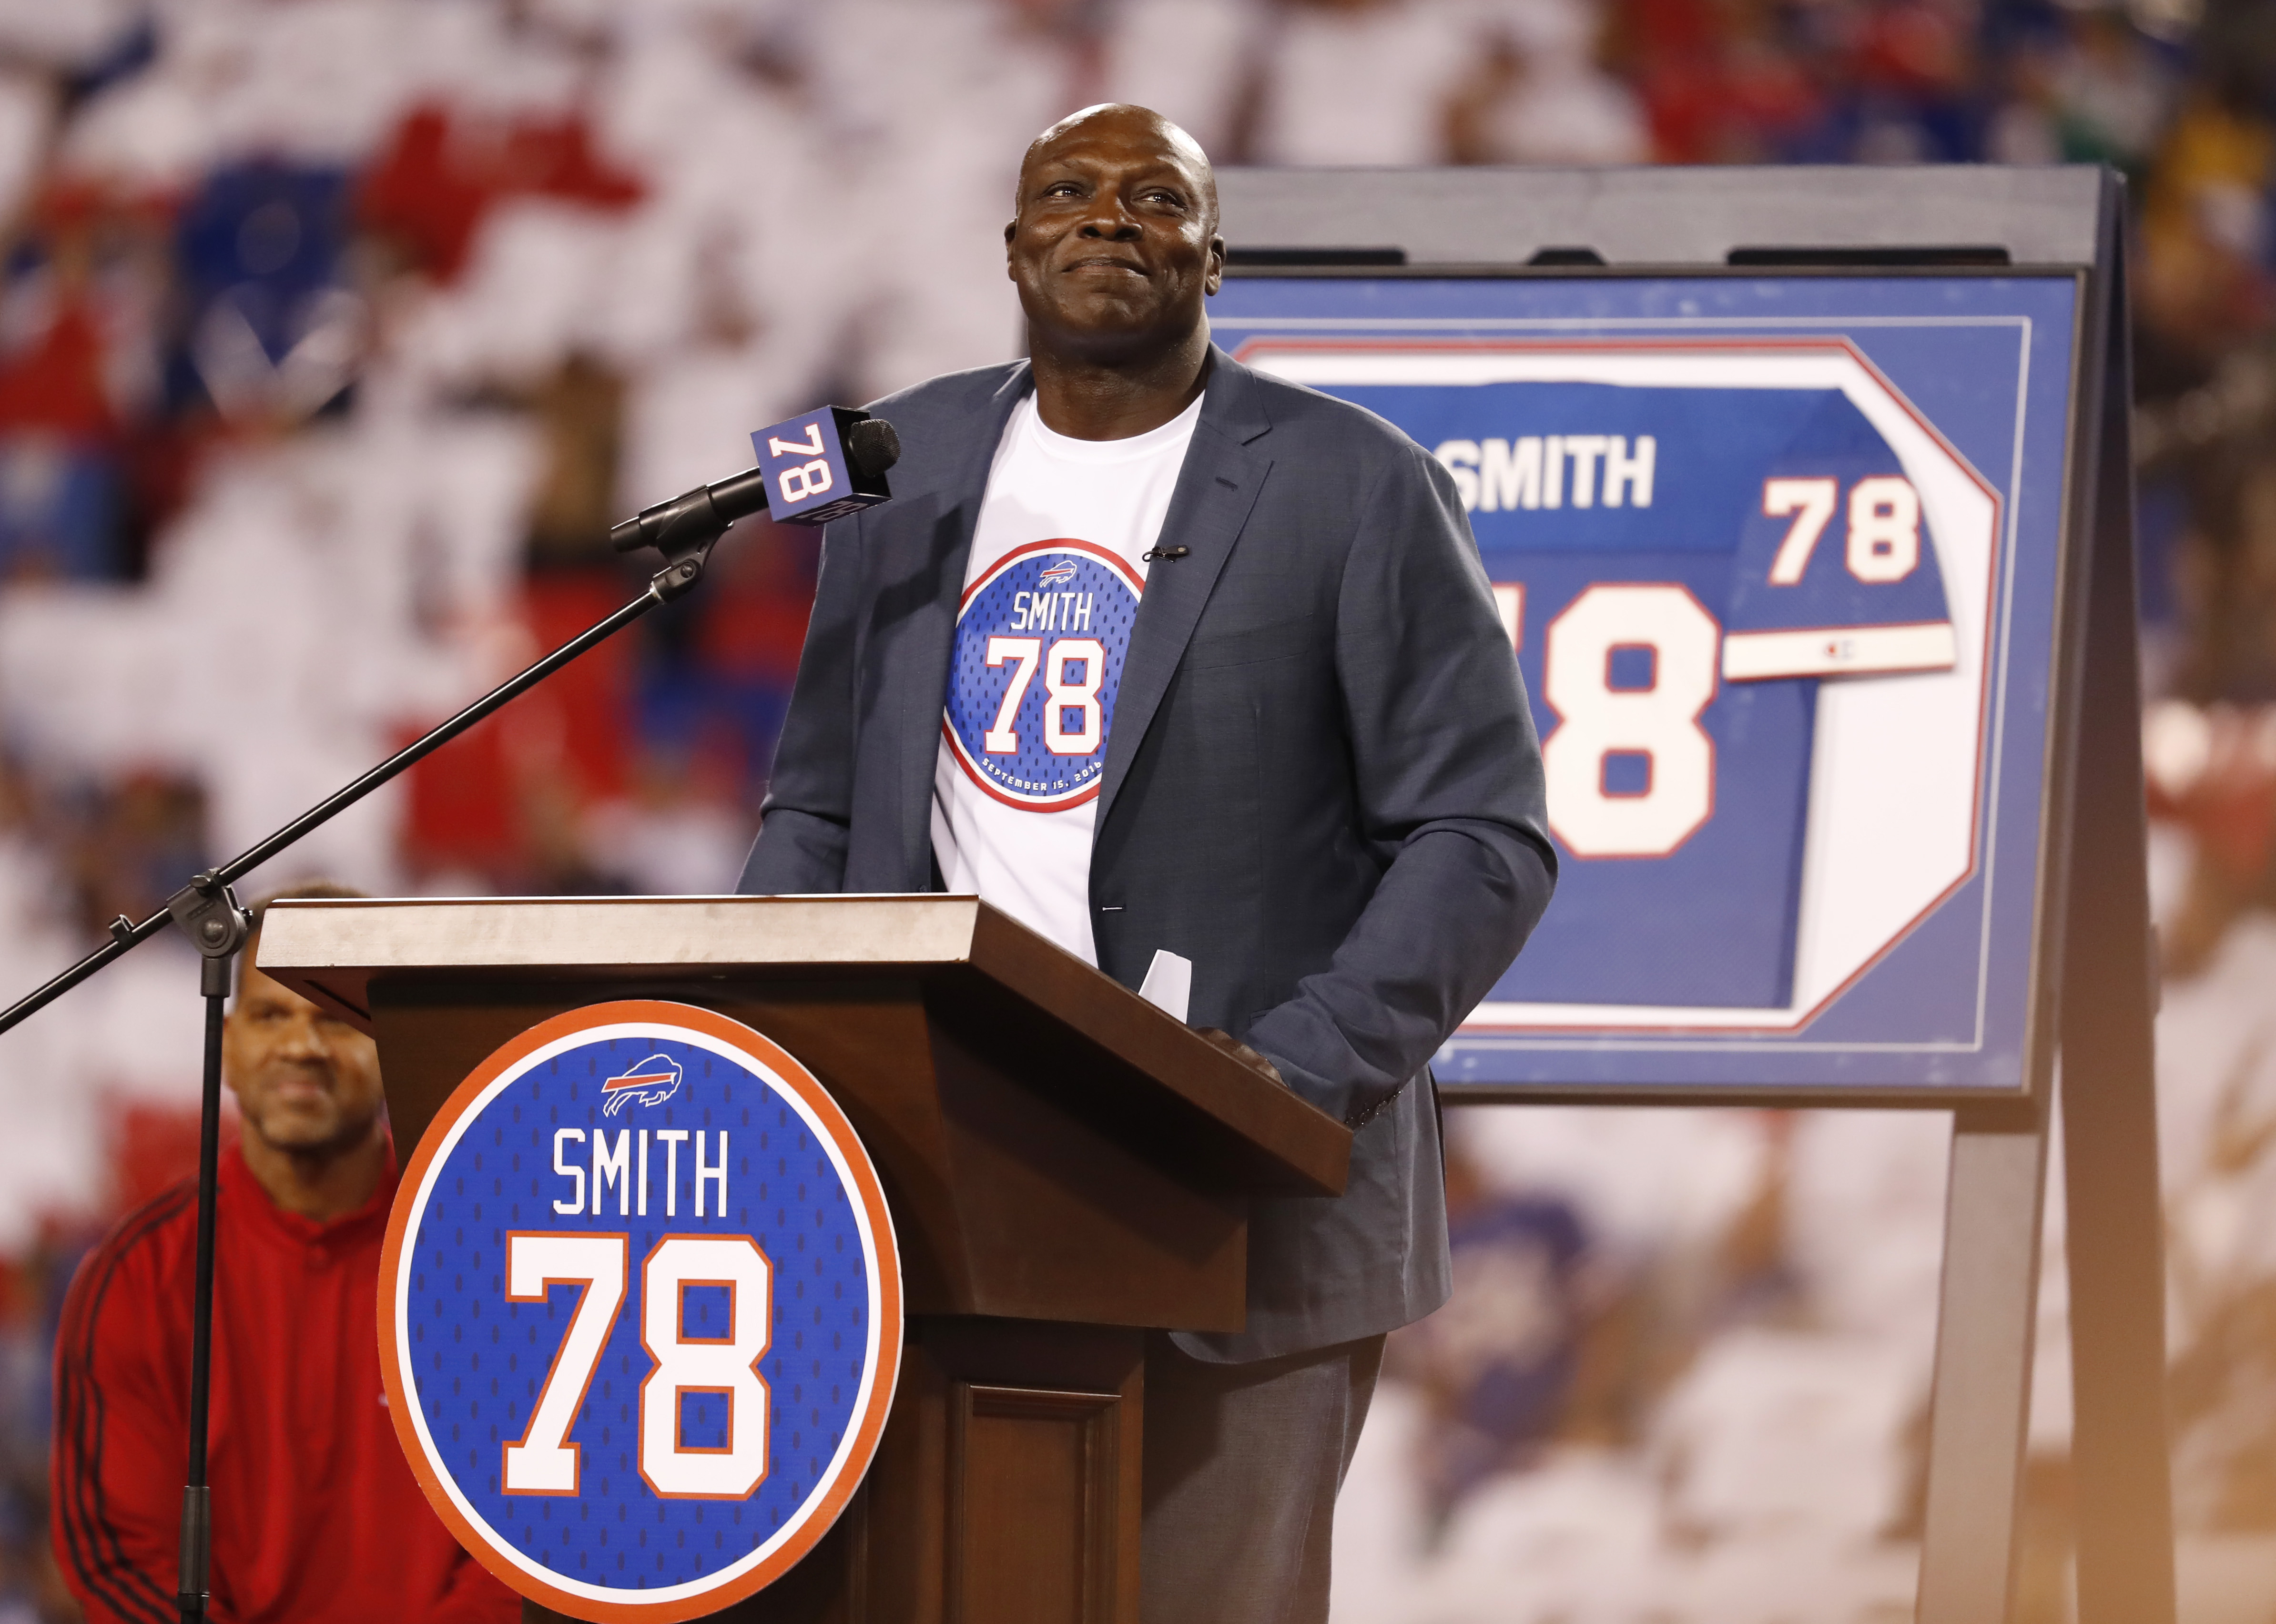 Bills Hall of Famer  Bruce Smith soaks in the applause during his jersey retirement ceremony at halftime. (Harry Scull Jr./Buffalo News)